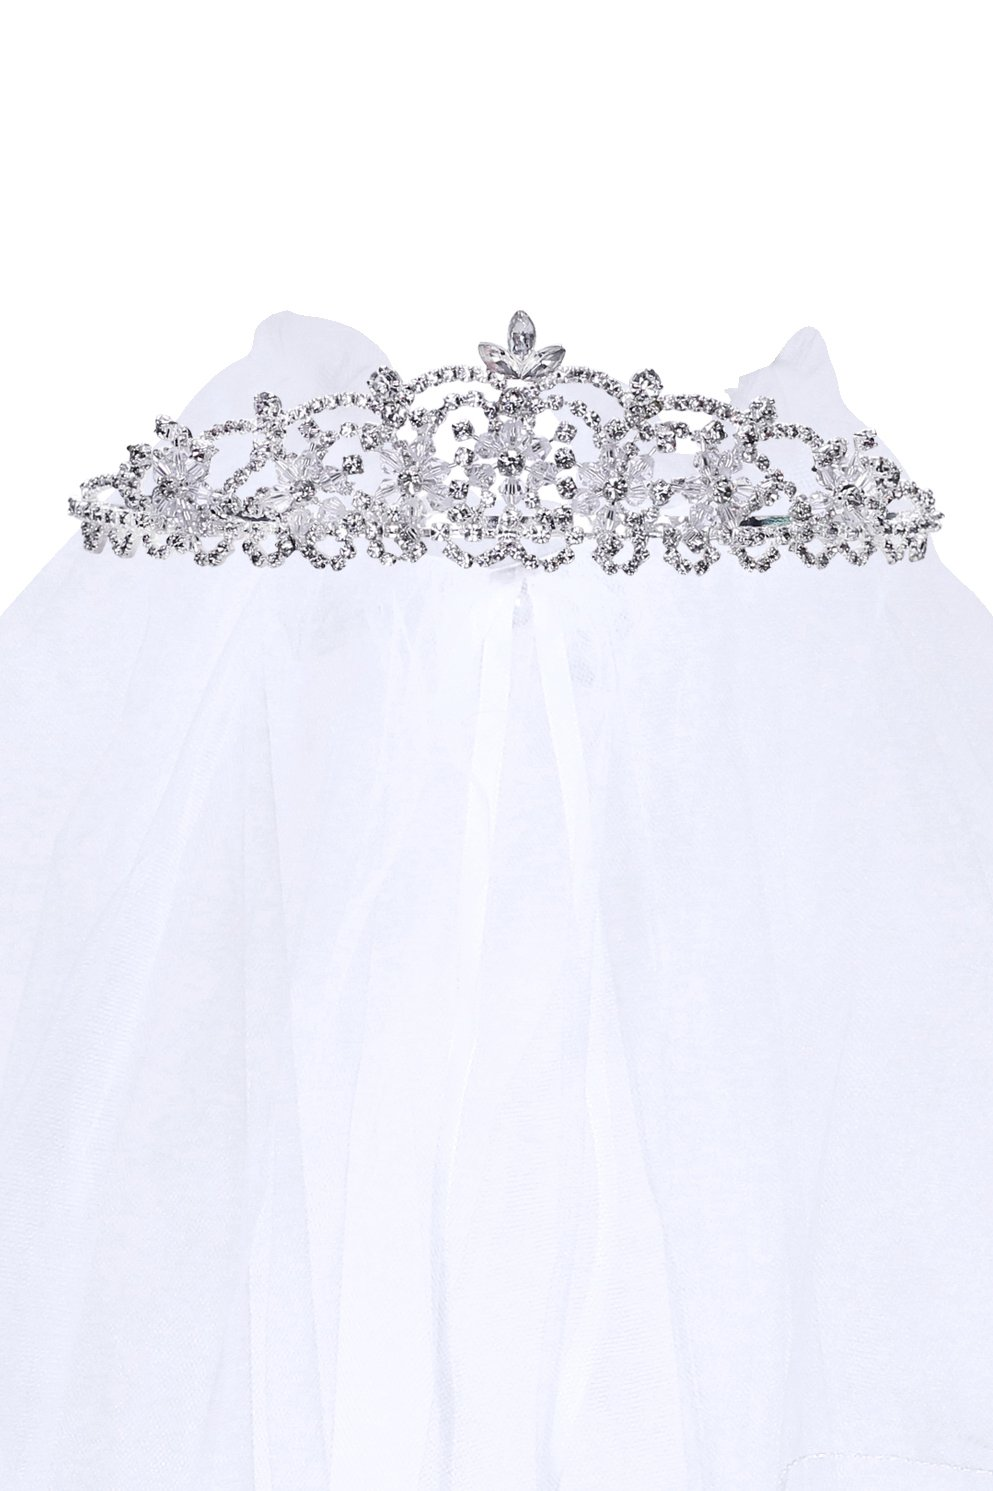 Kids Dream Precious First Communion Flower Girl Veil w/Elegant Crystal Stone Crown for Girls